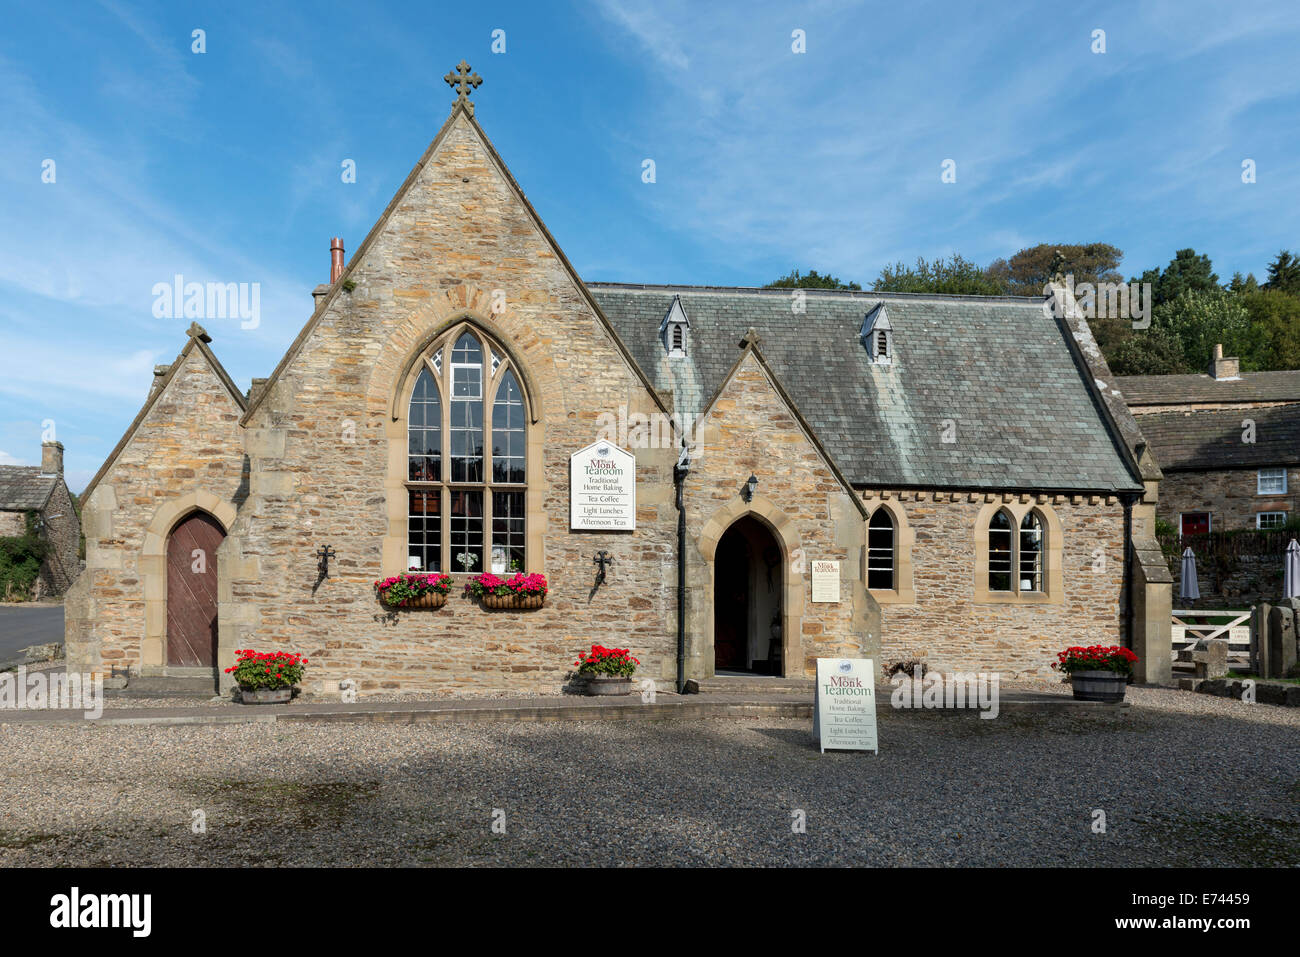 The White Monk tearoom a former school house in the picturesque Northumberland village of Blanchland - Stock Image